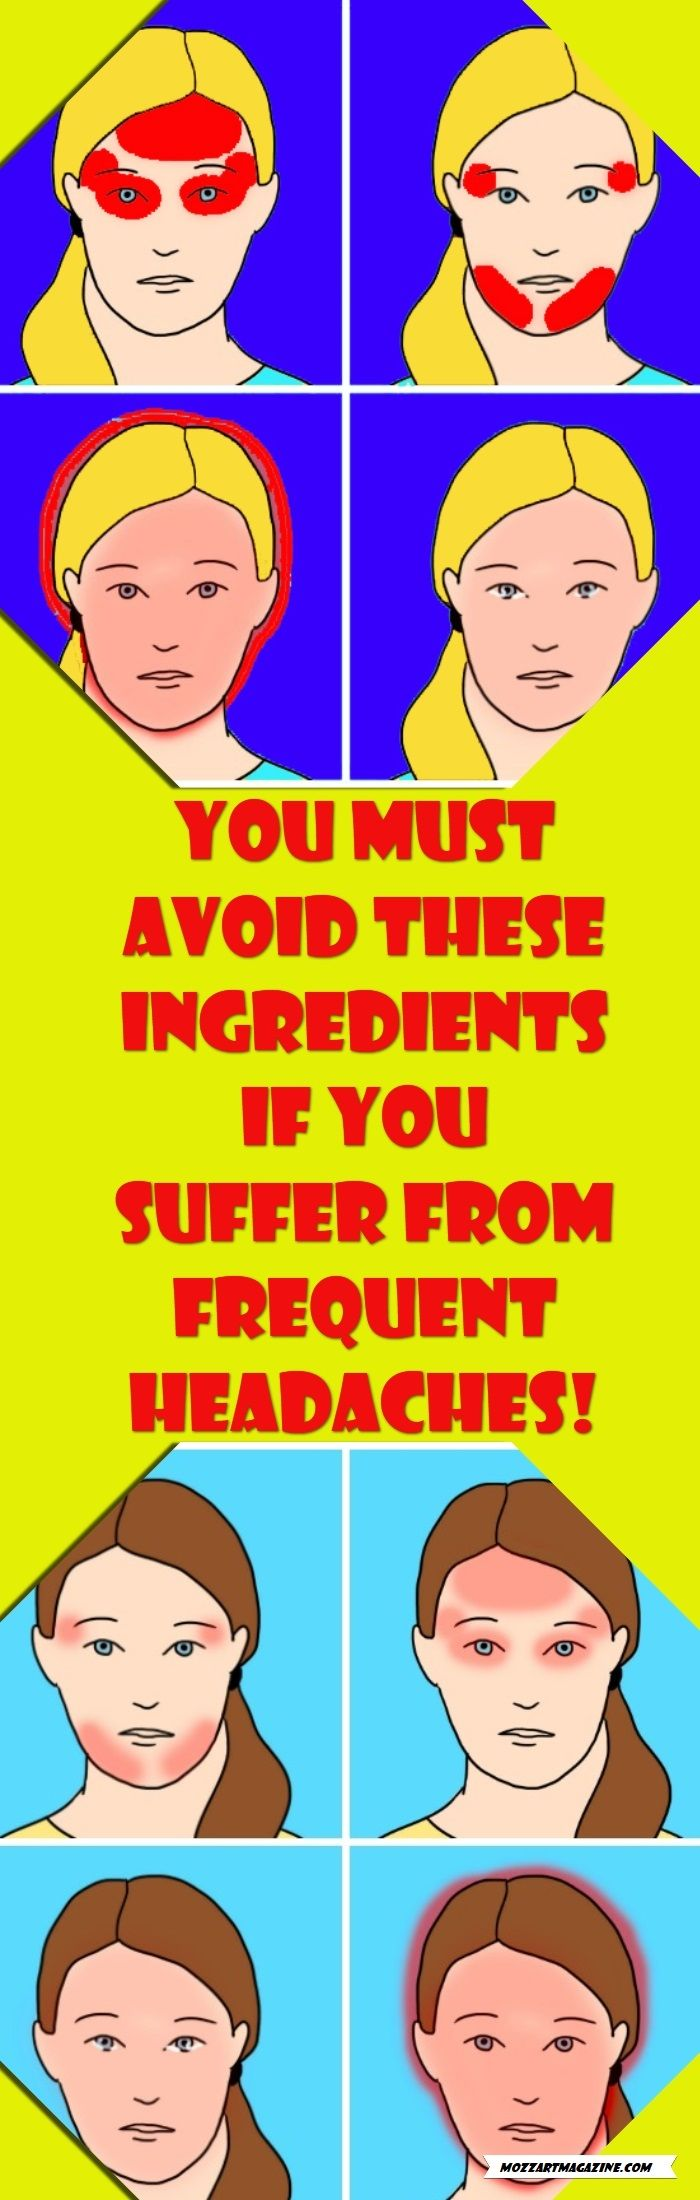 YOU MUST AVOID THESE INGREDIENTS IF YOU SUFFER FROM FREQUENT HEADACHES!